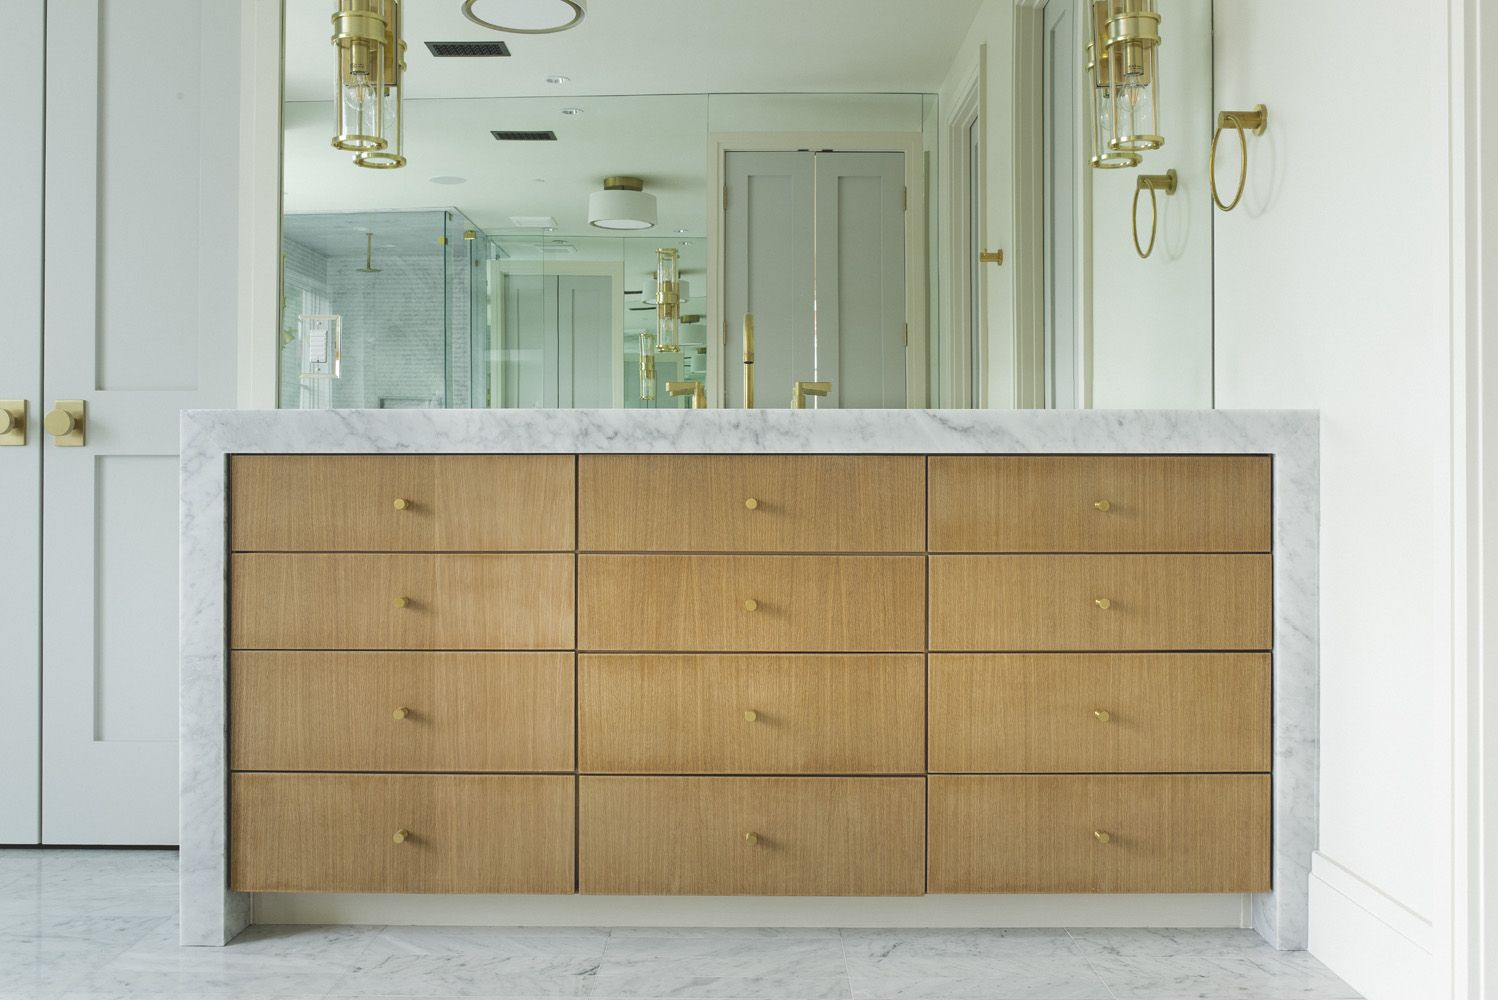 Coats Home bathroom with blond wood vanity, marble counters, brass sconce